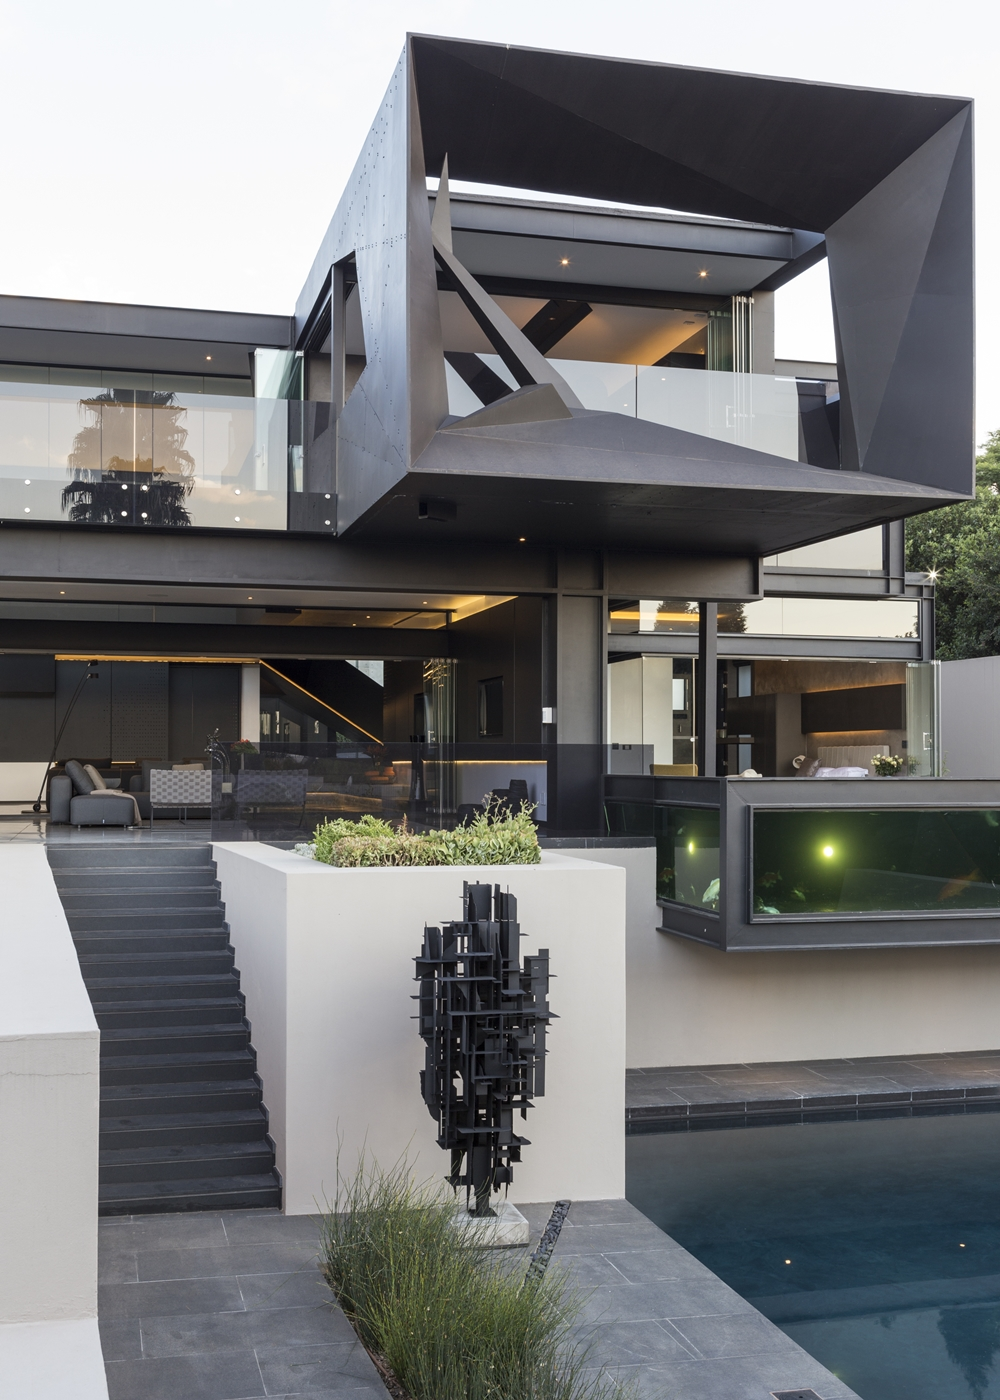 Best houses in the world amazing kloof road house for Best architectural house plans